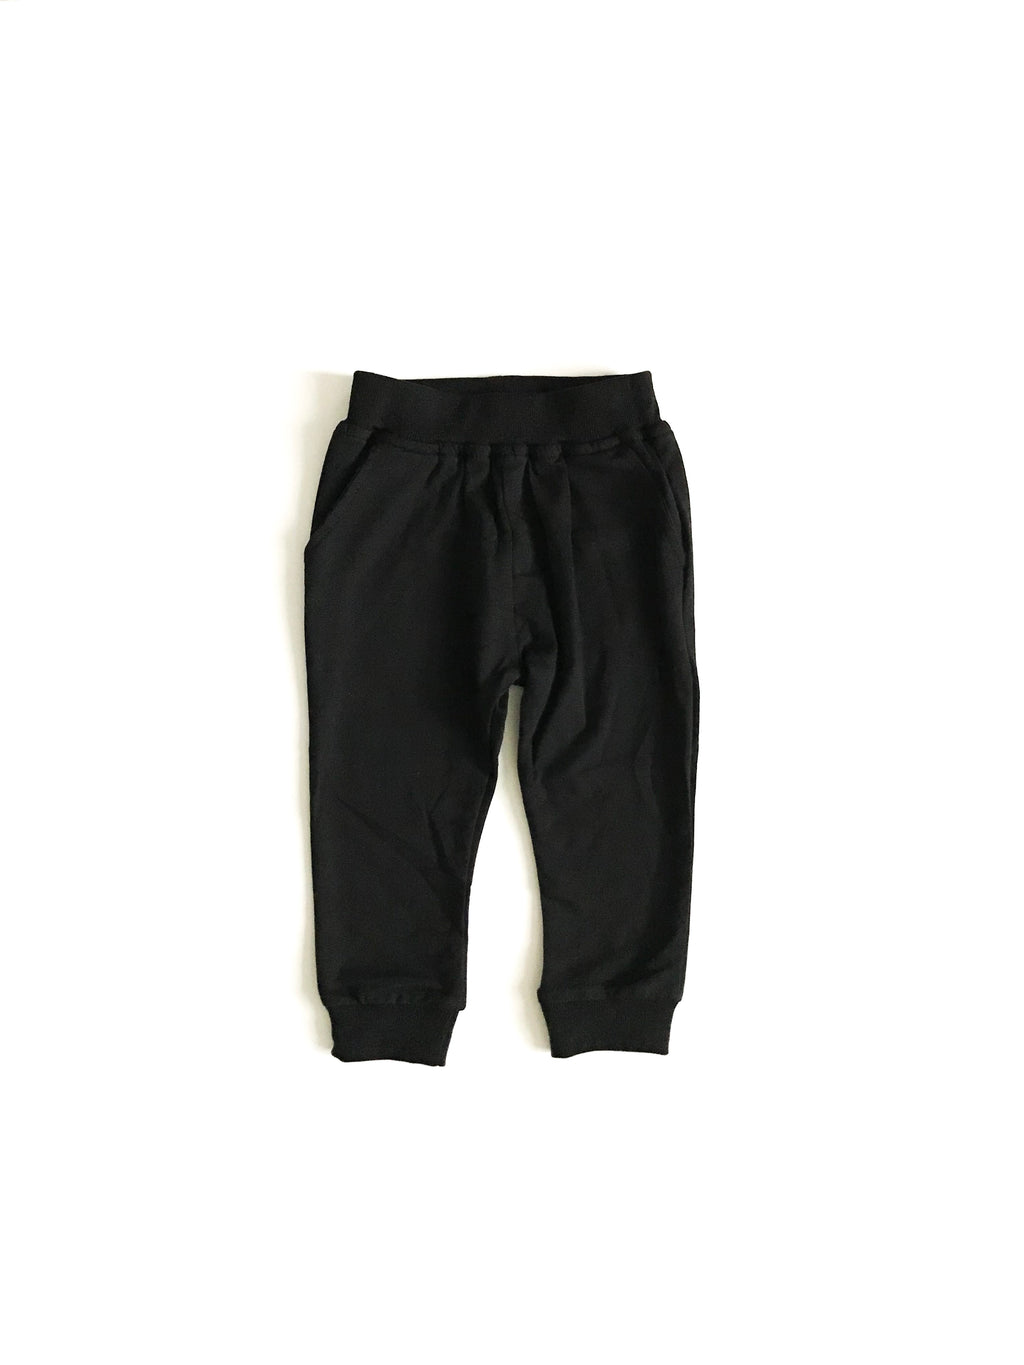 Toddler Lounge Pants - Black